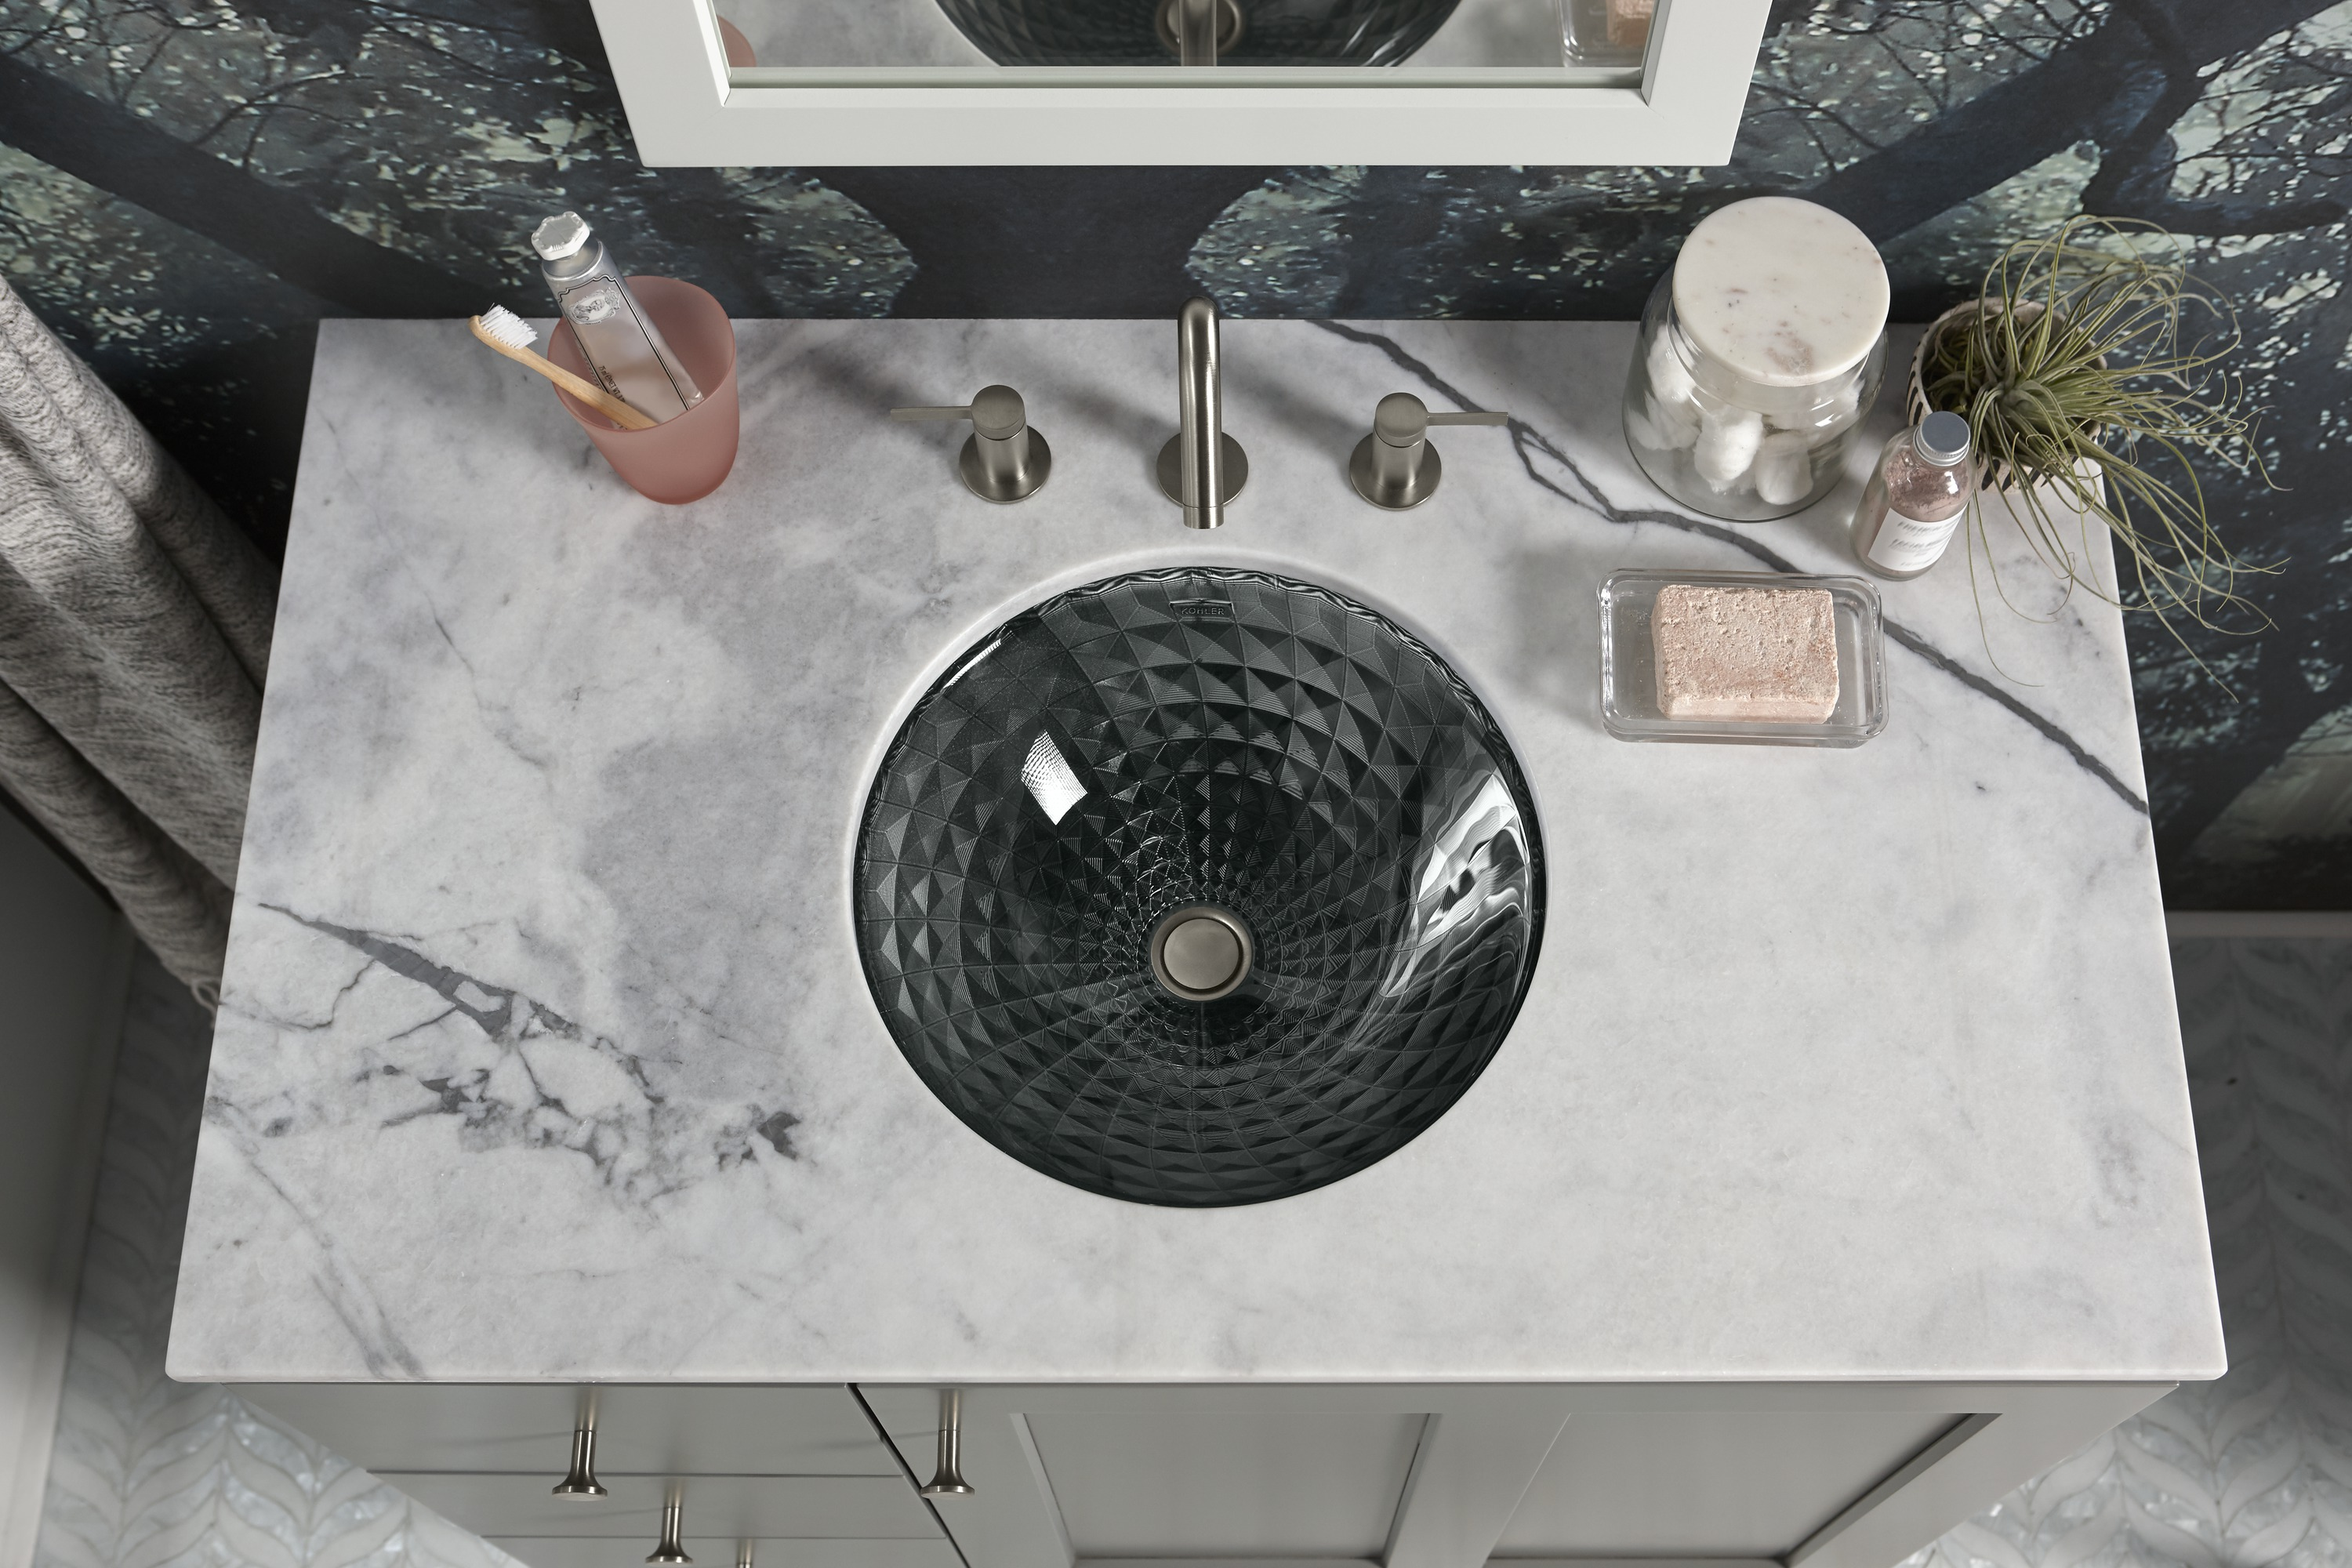 Stillness® faucet     Kallos® sink     A faceted glass sink reflects the room's moody depth.